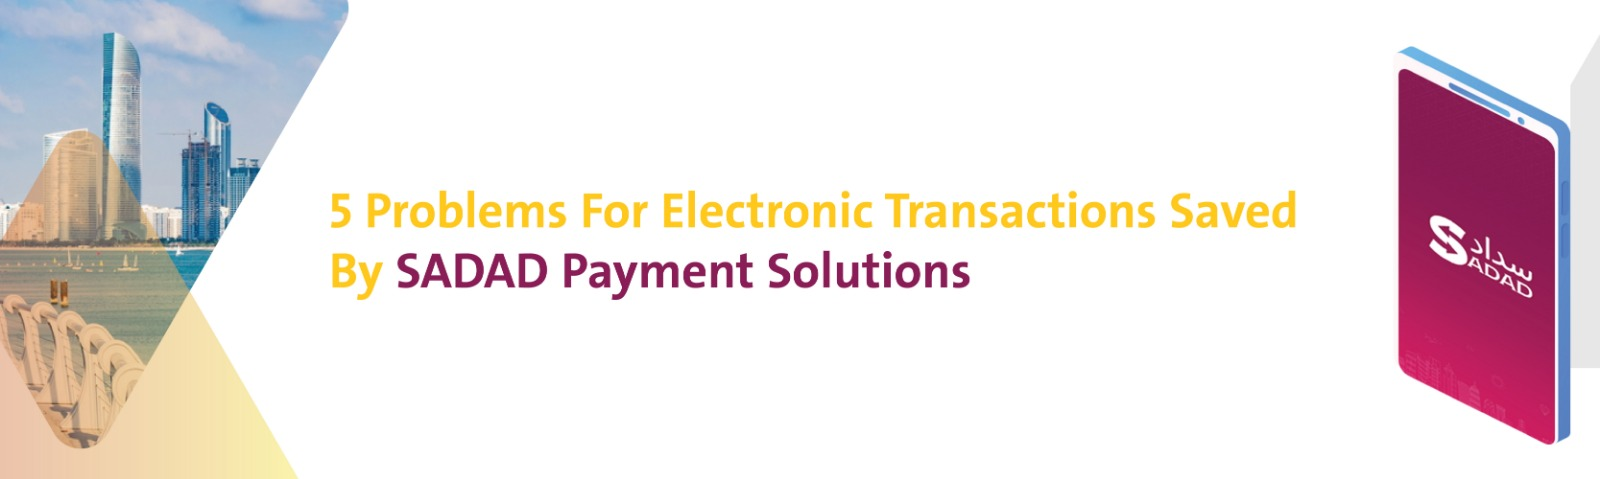 5 Problems For Electronic Transactions Saved By SADAD Payment Solutions